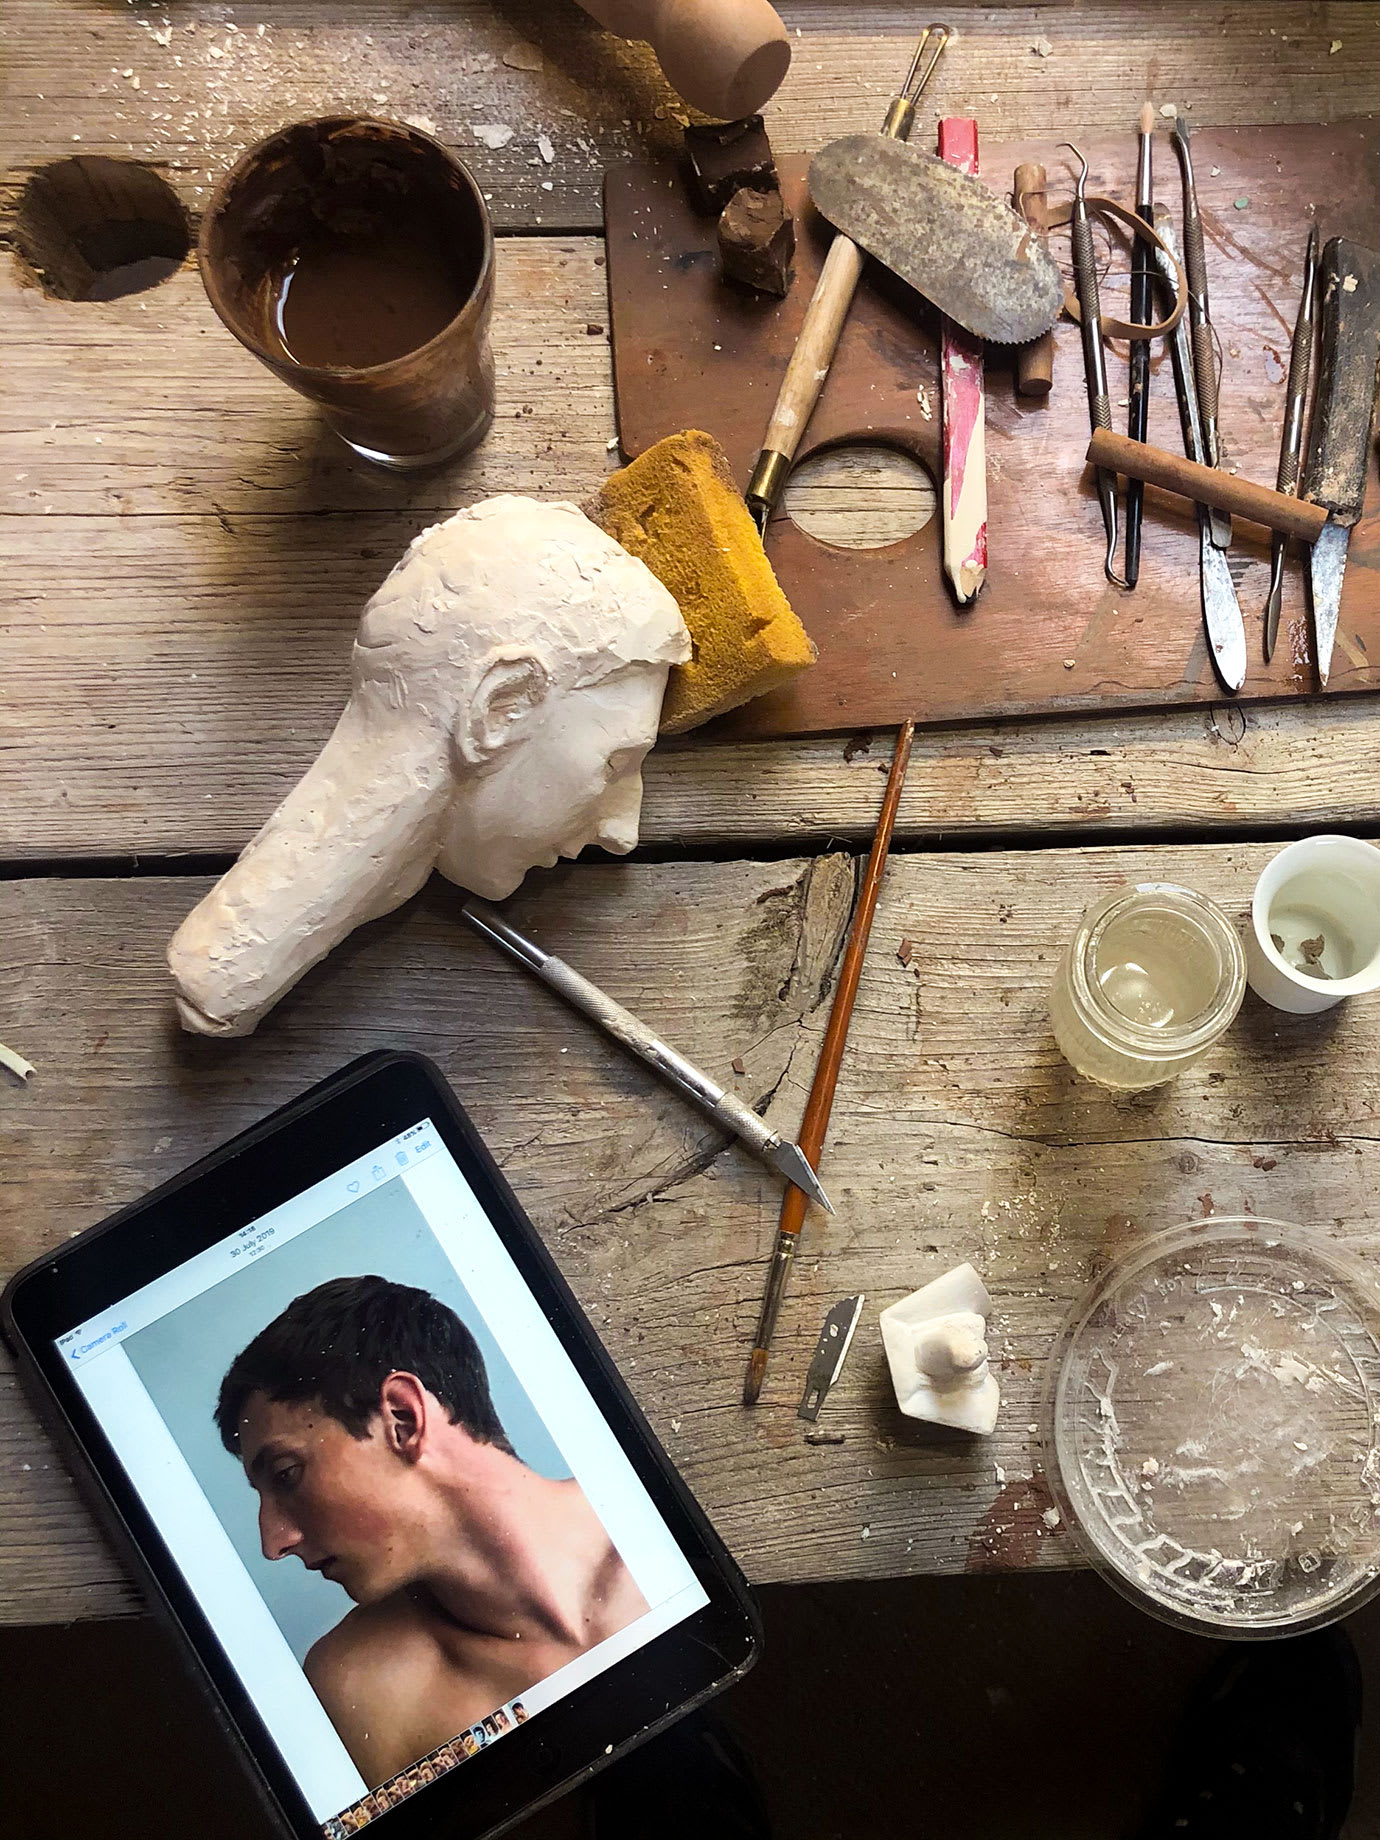 A workbench with sculptors tools and an iPad on it.